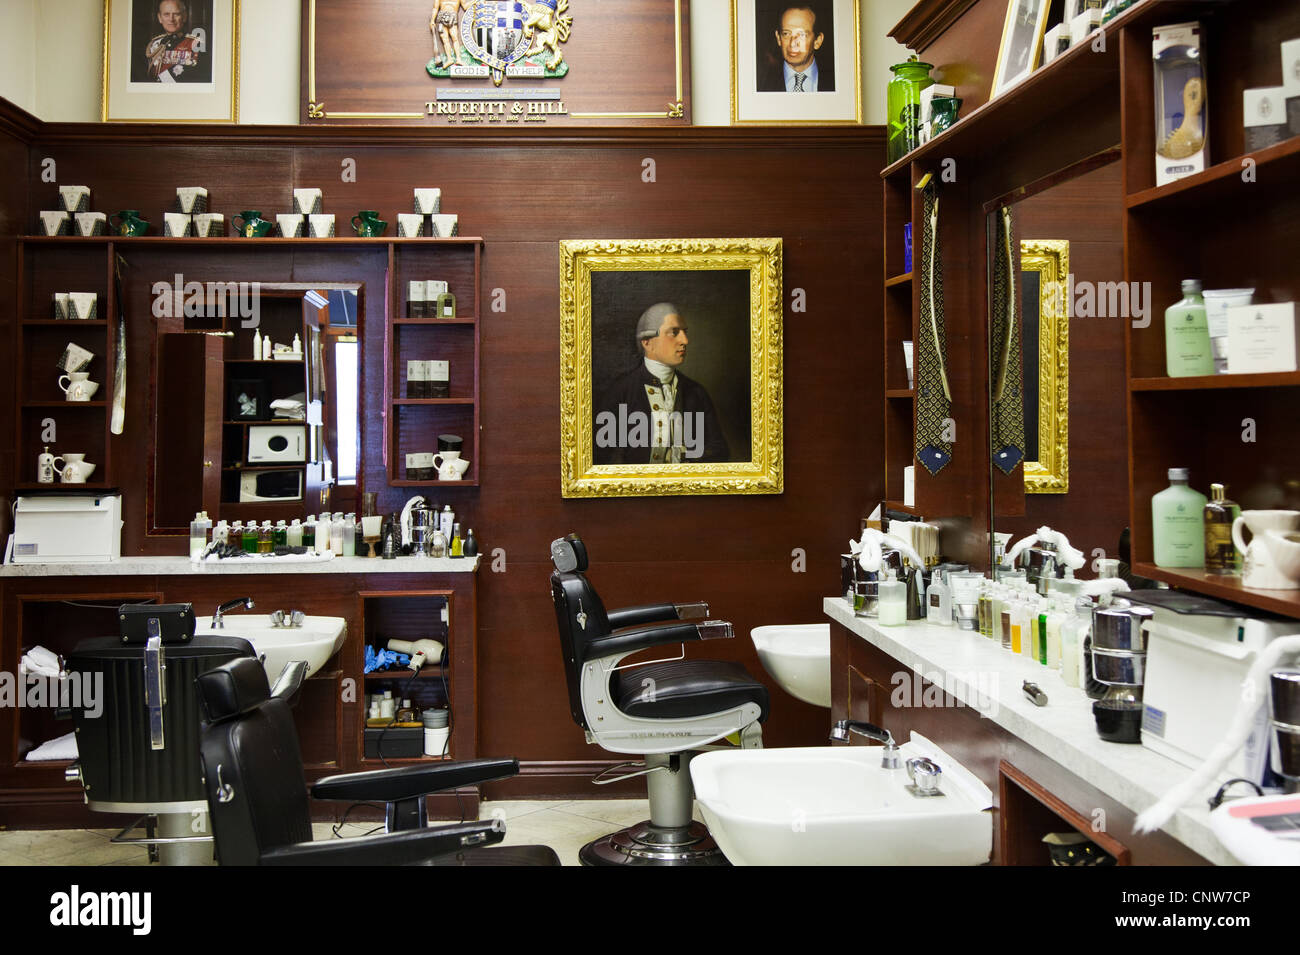 Europe England London, the James Bond's places, the barber shop Truefitt & Hill in St James street Stock Photo